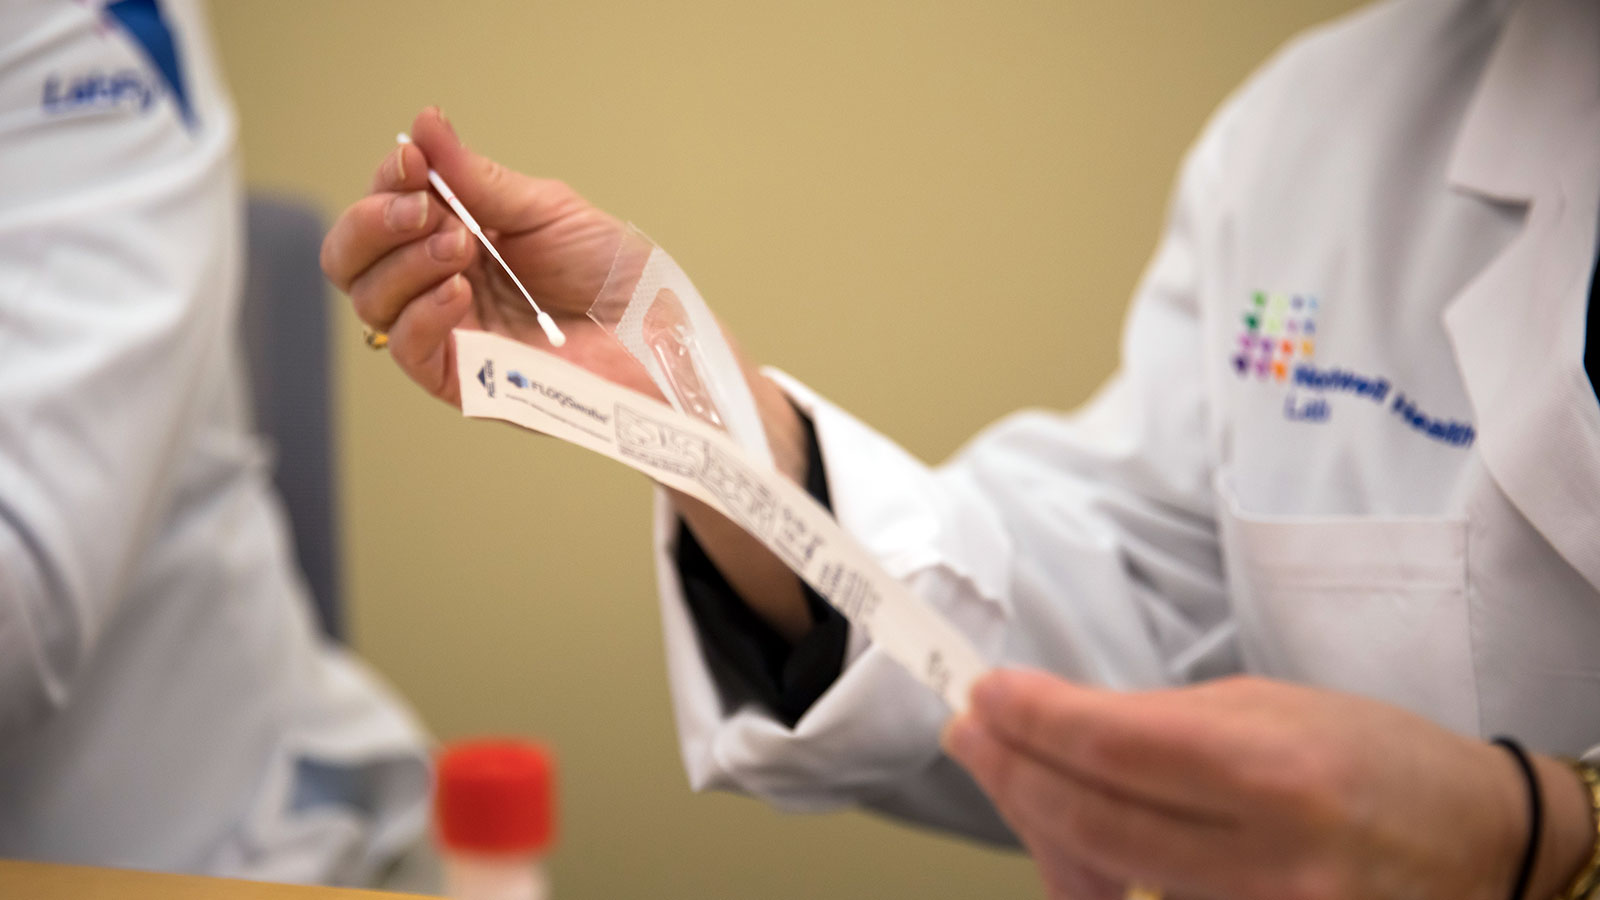 A pathologist holds a nasal swab from a Covid-19 test kit.